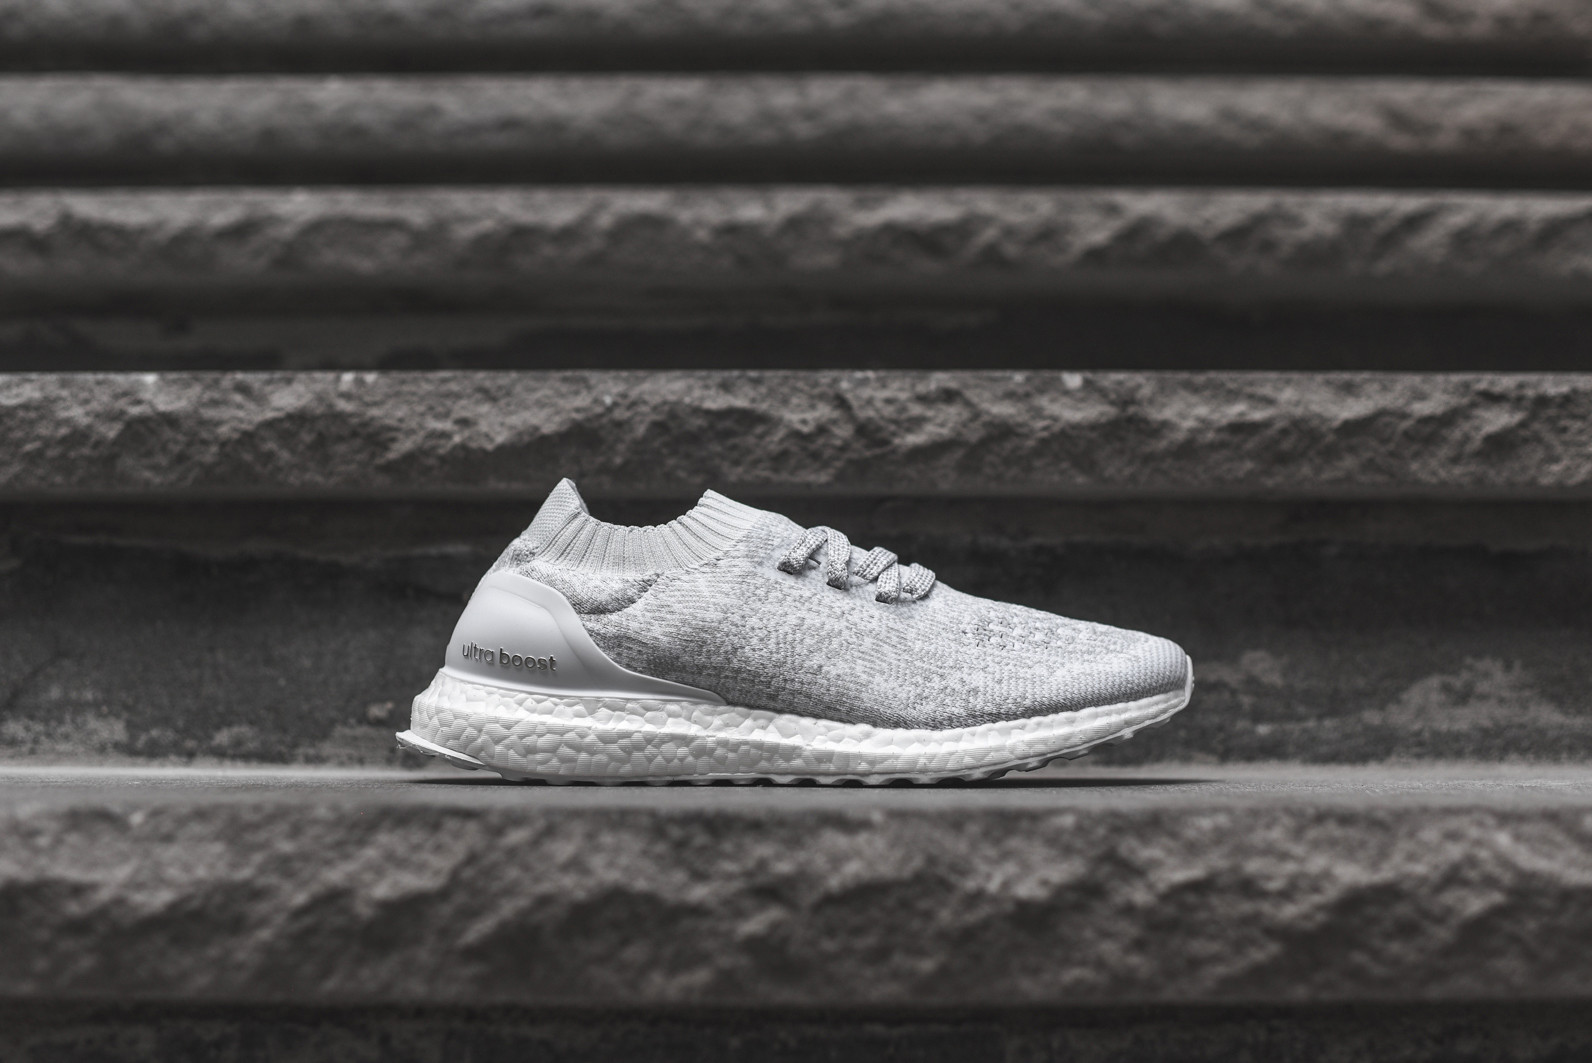 new products cc13b fe163 Very Goods | adidas Ultra Boost Uncaged - White | Kith NYC